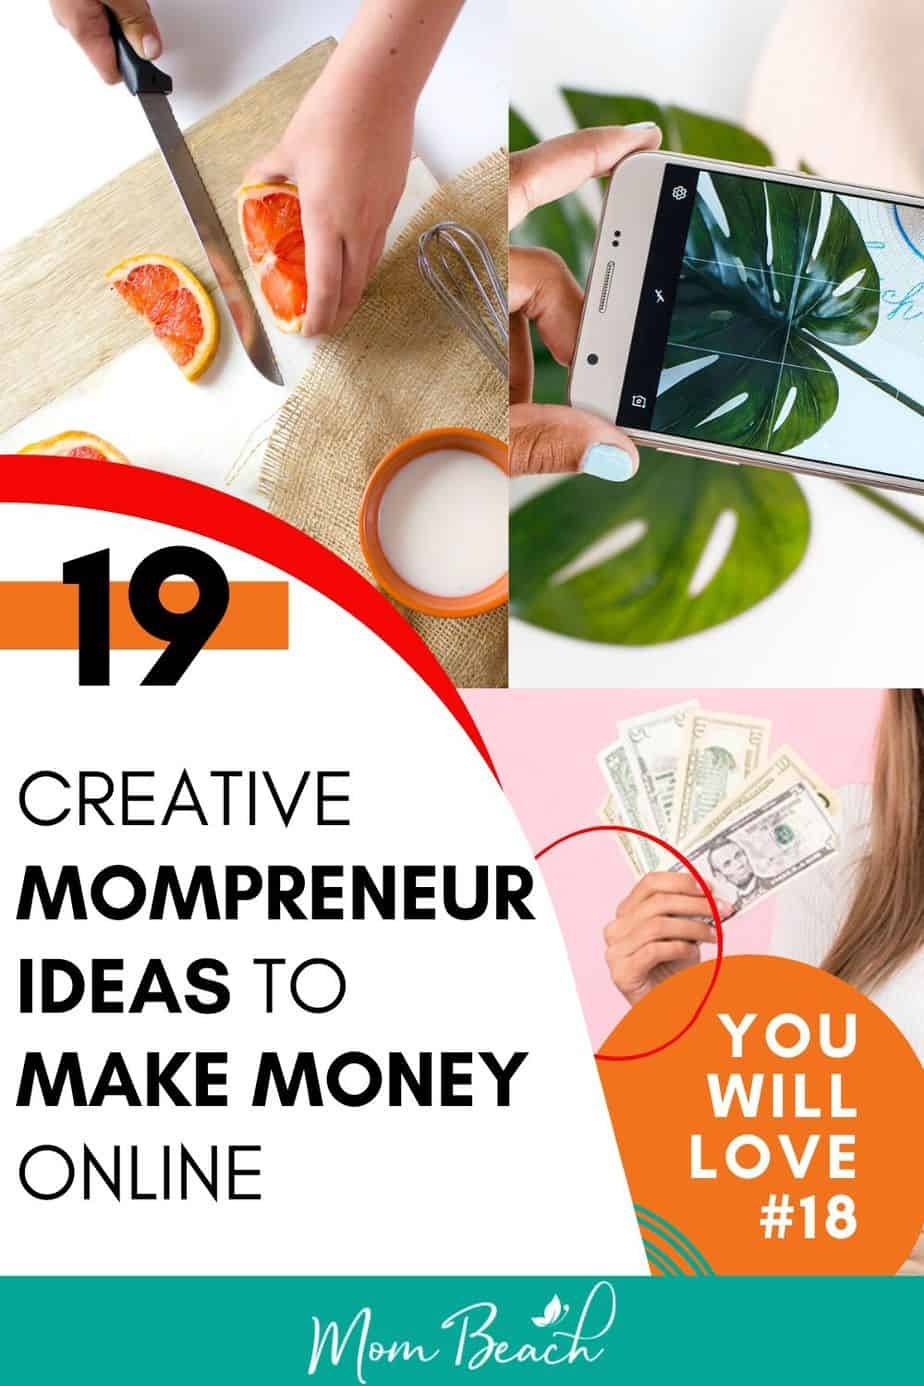 You won't believe how awesome these creative mompreneur ideas are! You can make money online so that you can stay home with your kids. They are great for stay at home moms who want to earn extra money online. Make money now from the privacy of your own home. You can start your own business now with no experience and no money down in some cases. #mompreneur #mompreneurideas #stayathomemomjobs #startabusiness #businessformoms #businessideasformoms